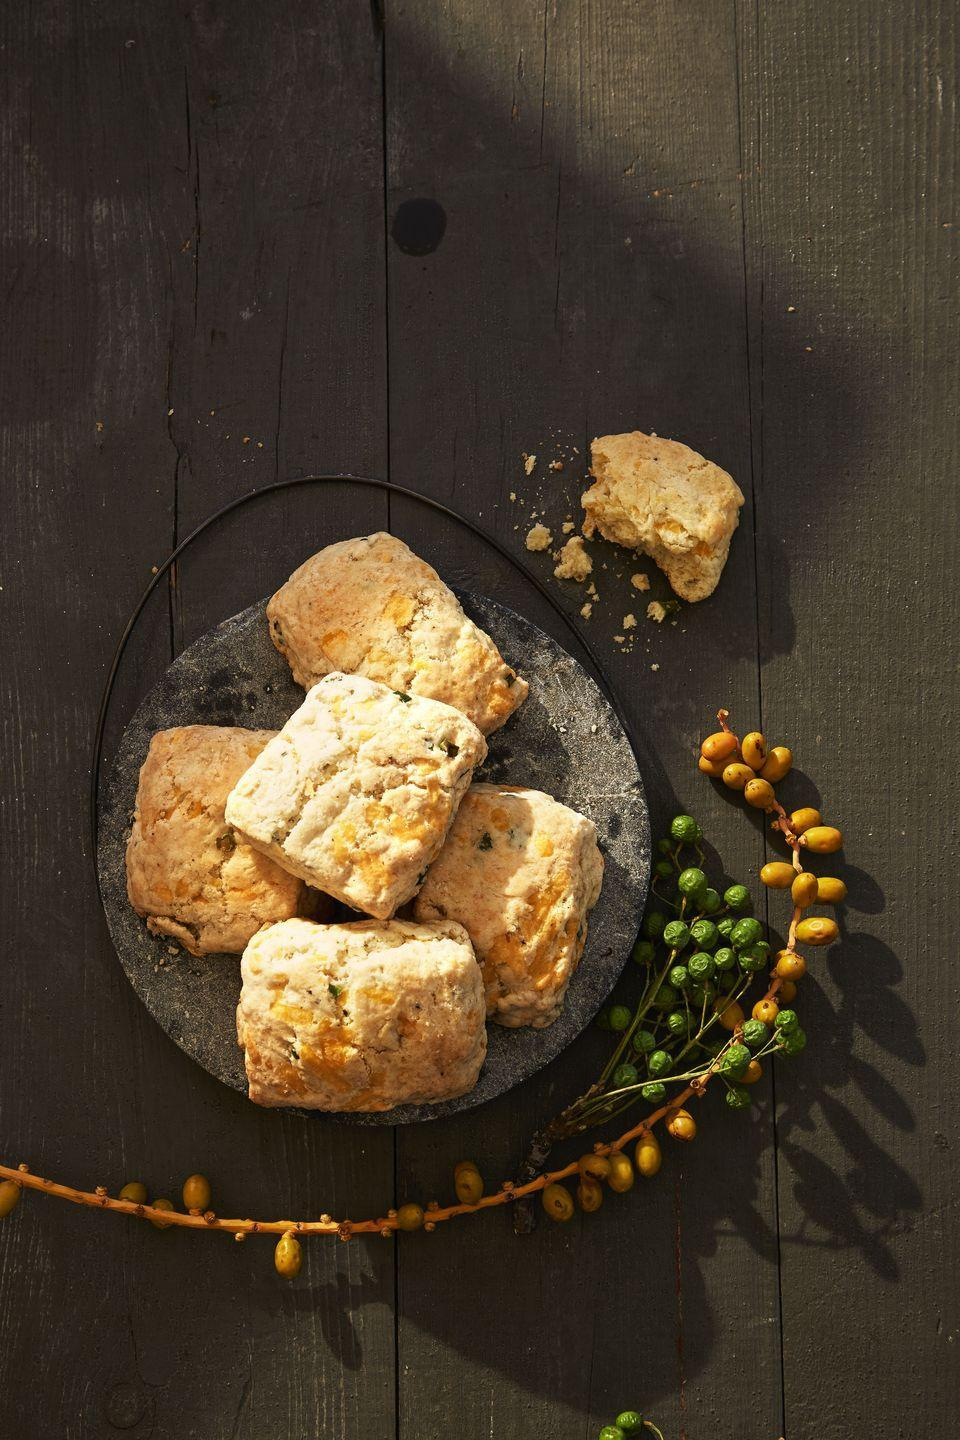 """<p>Cheesy, melt-in-your-mouth biscuits beat out regular rolls every time.</p><p><em><a href=""""https://www.goodhousekeeping.com/food-recipes/a41104/fluffy-apple-cheddar-biscuits-recipe/"""" rel=""""nofollow noopener"""" target=""""_blank"""" data-ylk=""""slk:Get the recipe for Fluffy Apple-Cheddar Biscuits »"""" class=""""link rapid-noclick-resp"""">Get the recipe for Fluffy Apple-Cheddar Biscuits »</a></em></p>"""